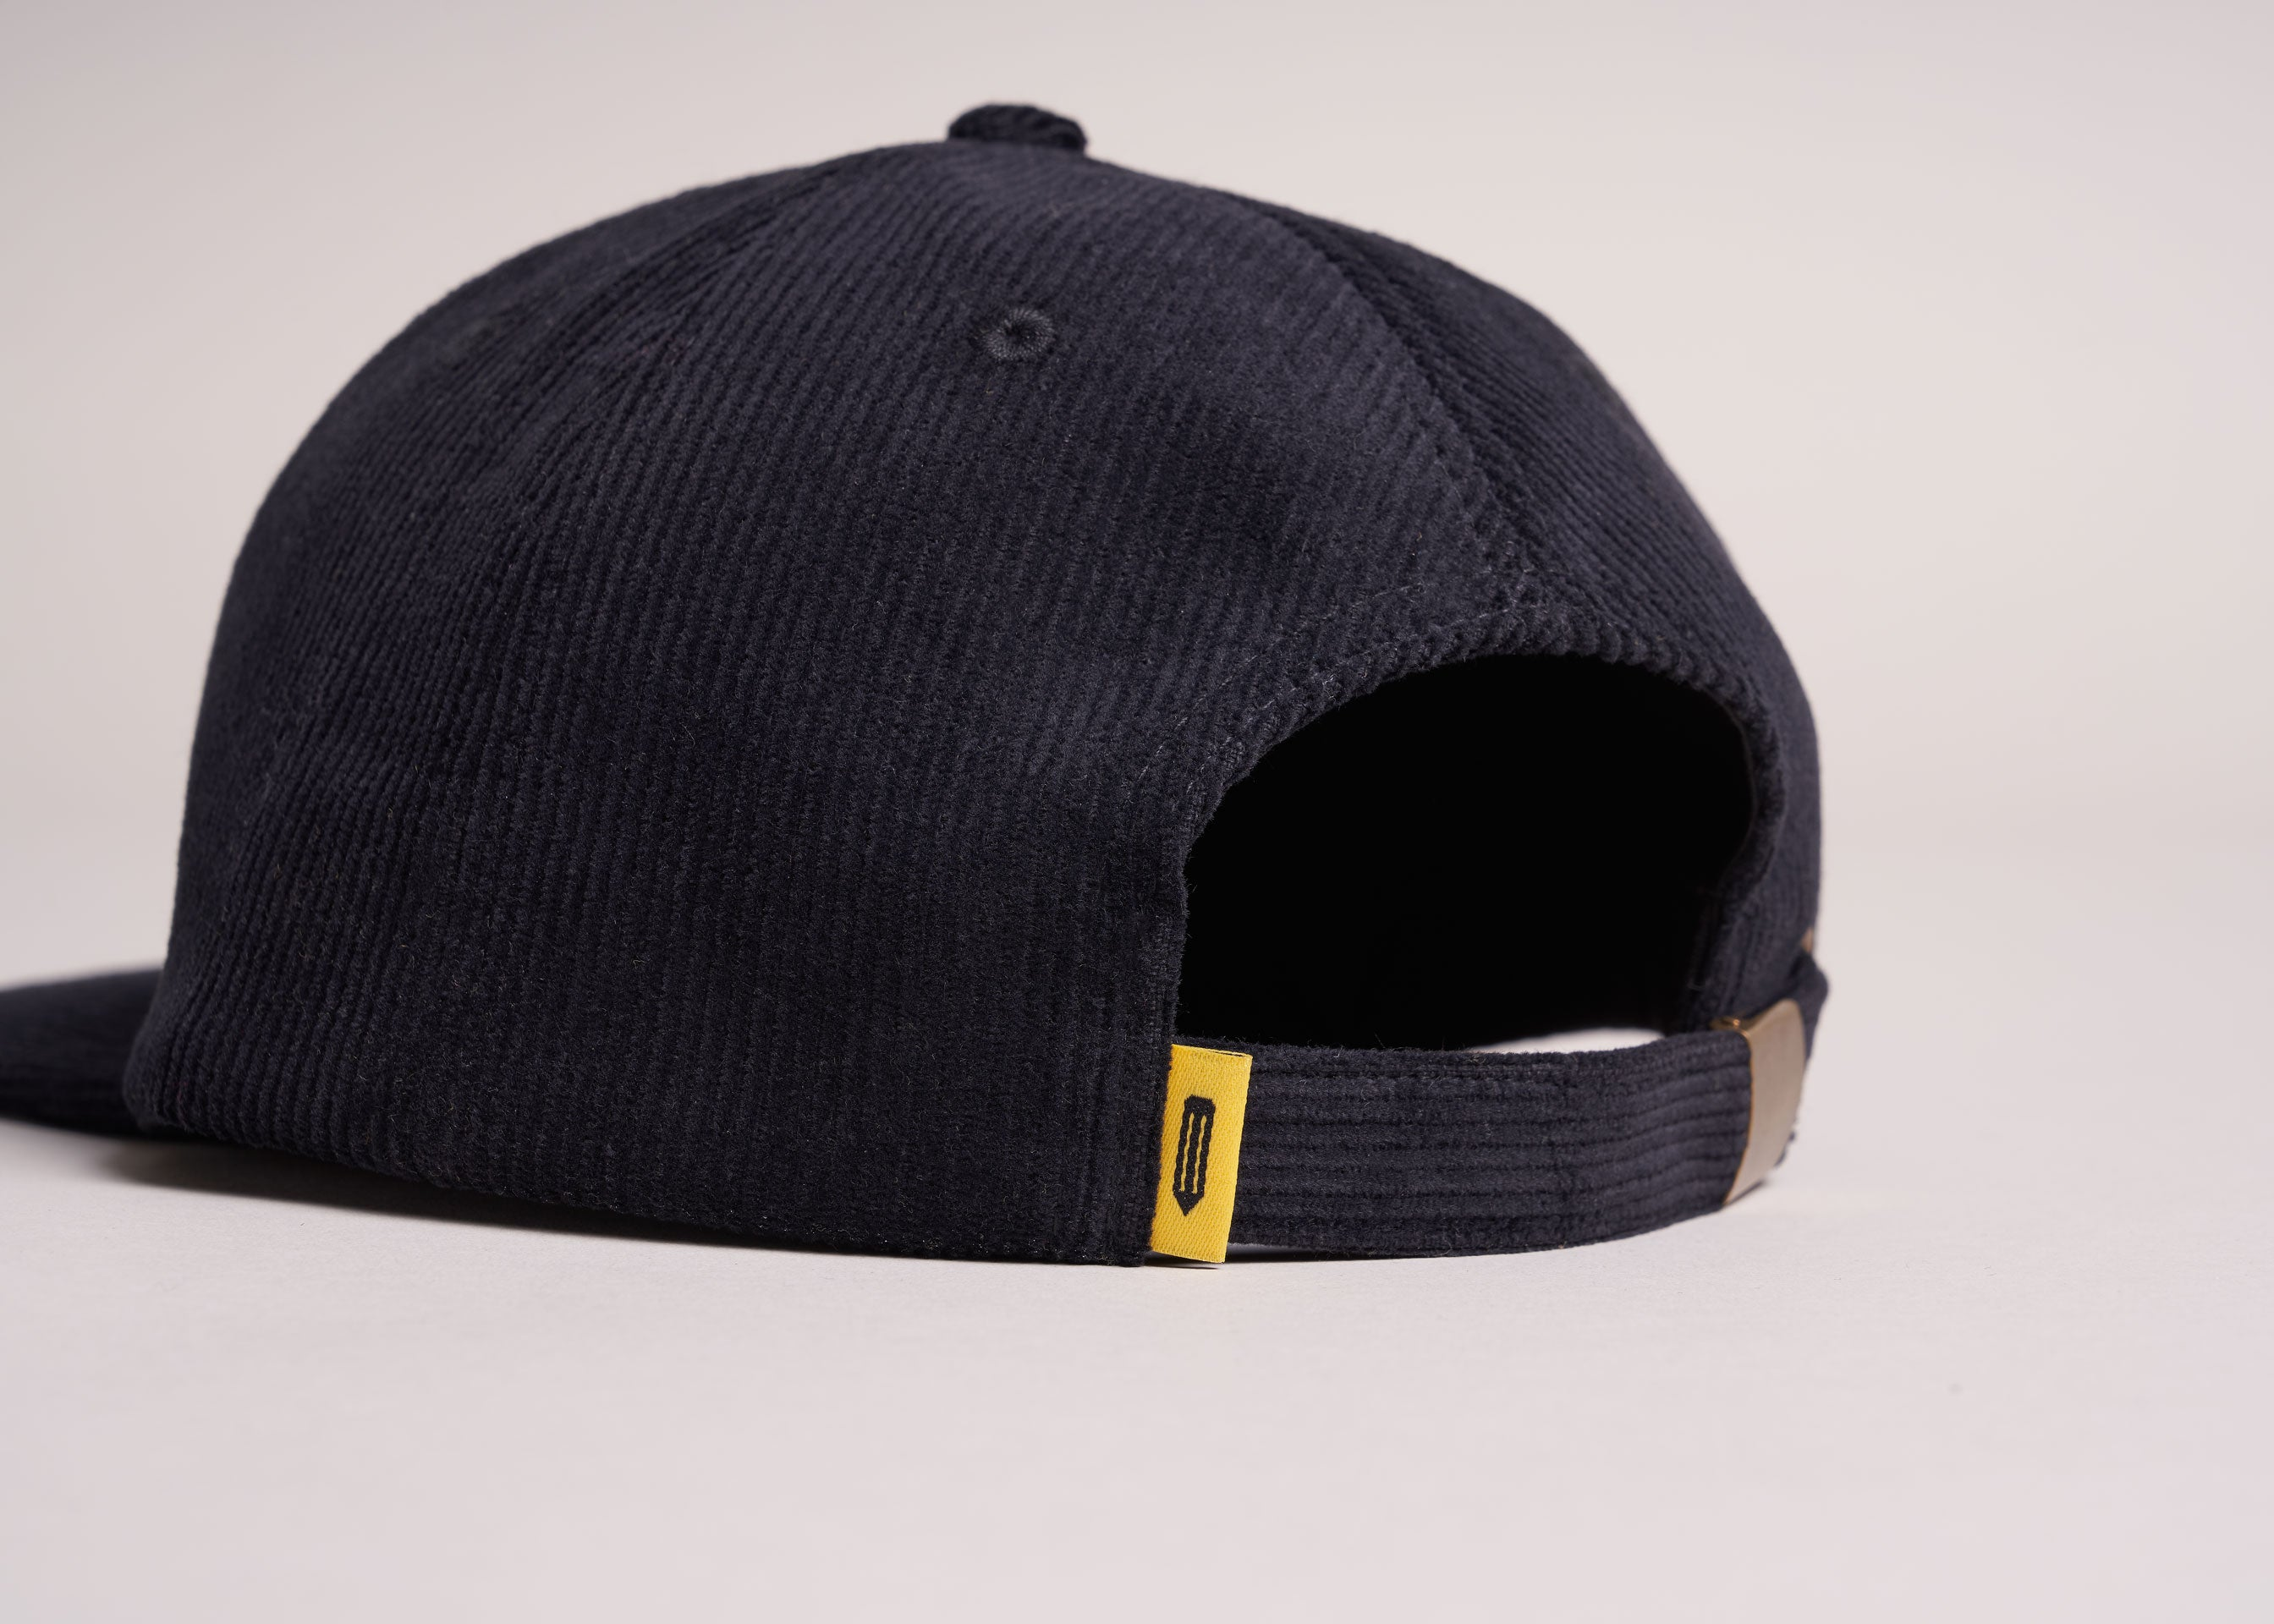 A backside view of a black unstructured corduroy cap with a yellow tag.